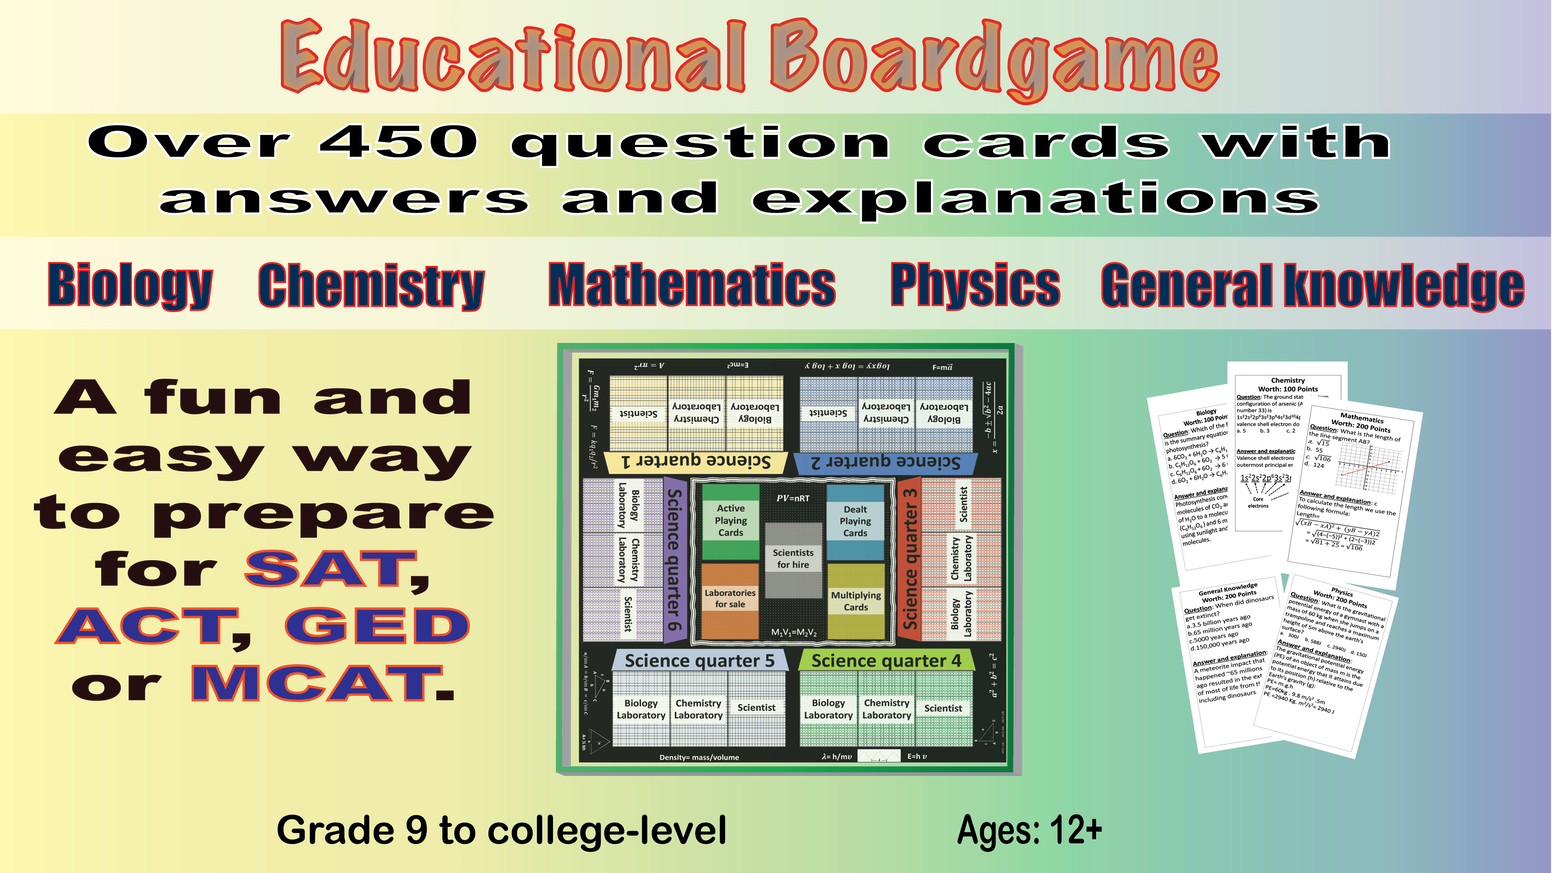 Educational boardgame on Science, Math and General Knowledge